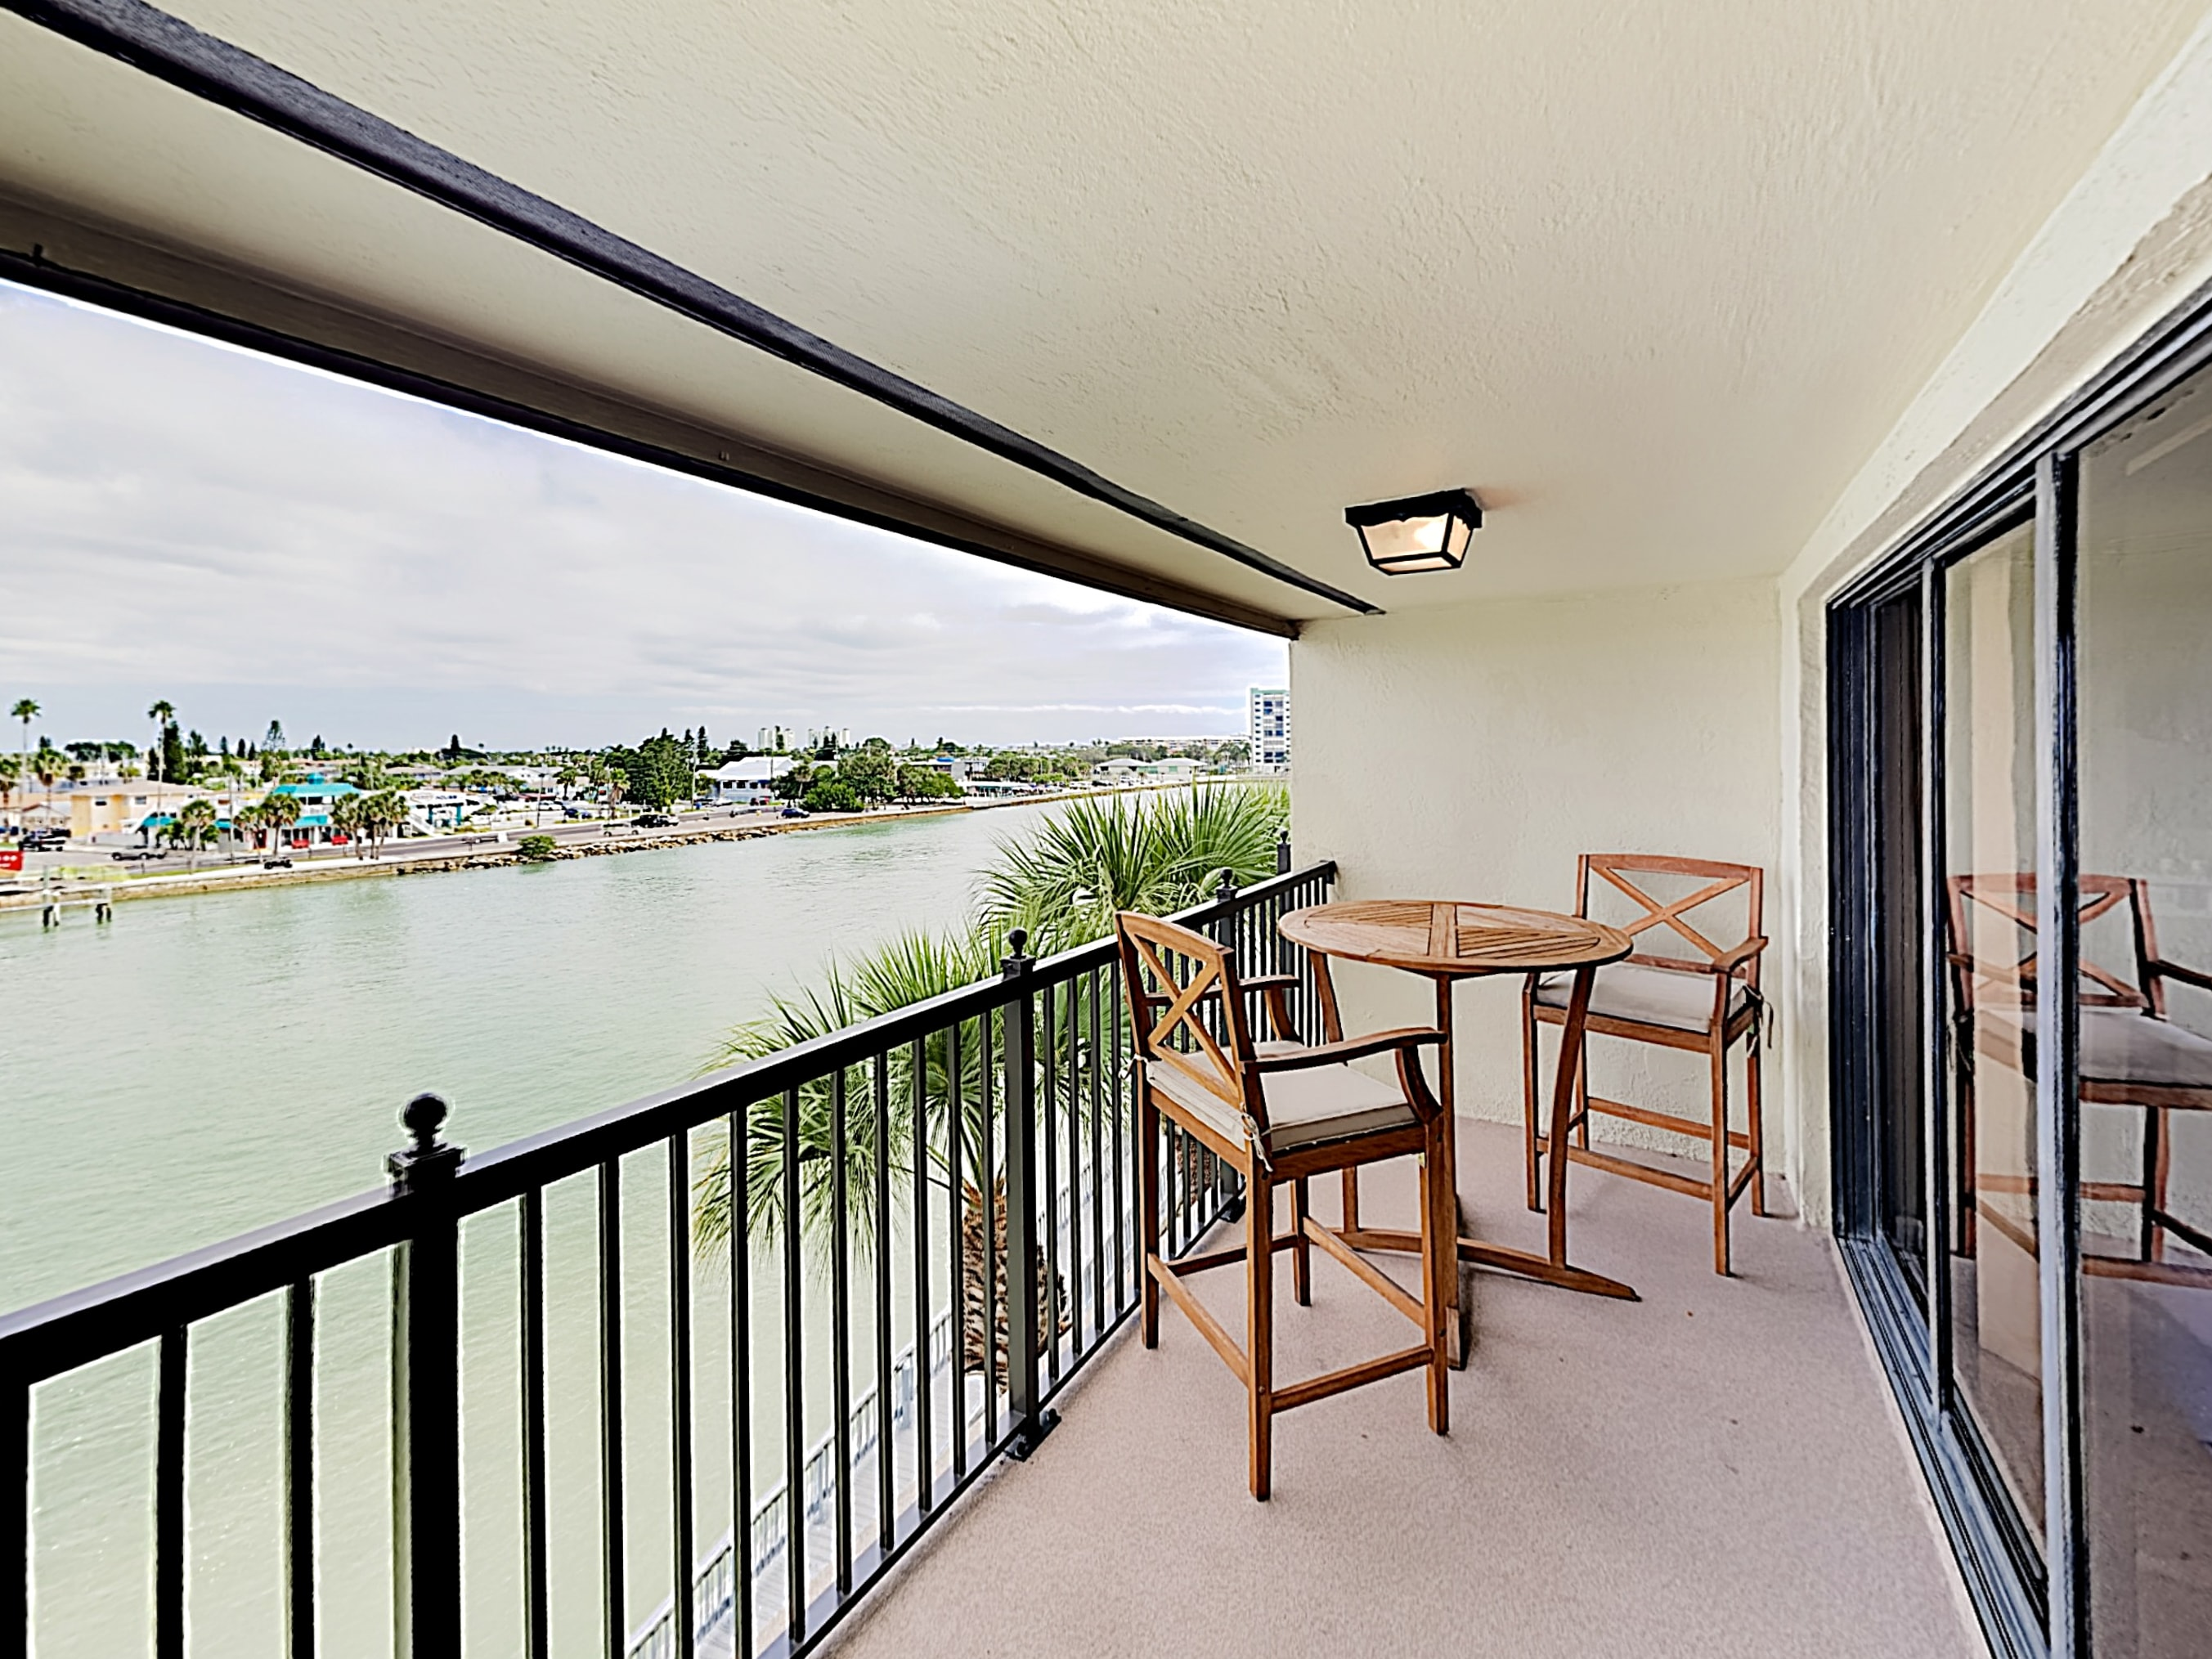 Overlooking a public Intracoastal beach, the 4th-floor balcony offers seating for 2.